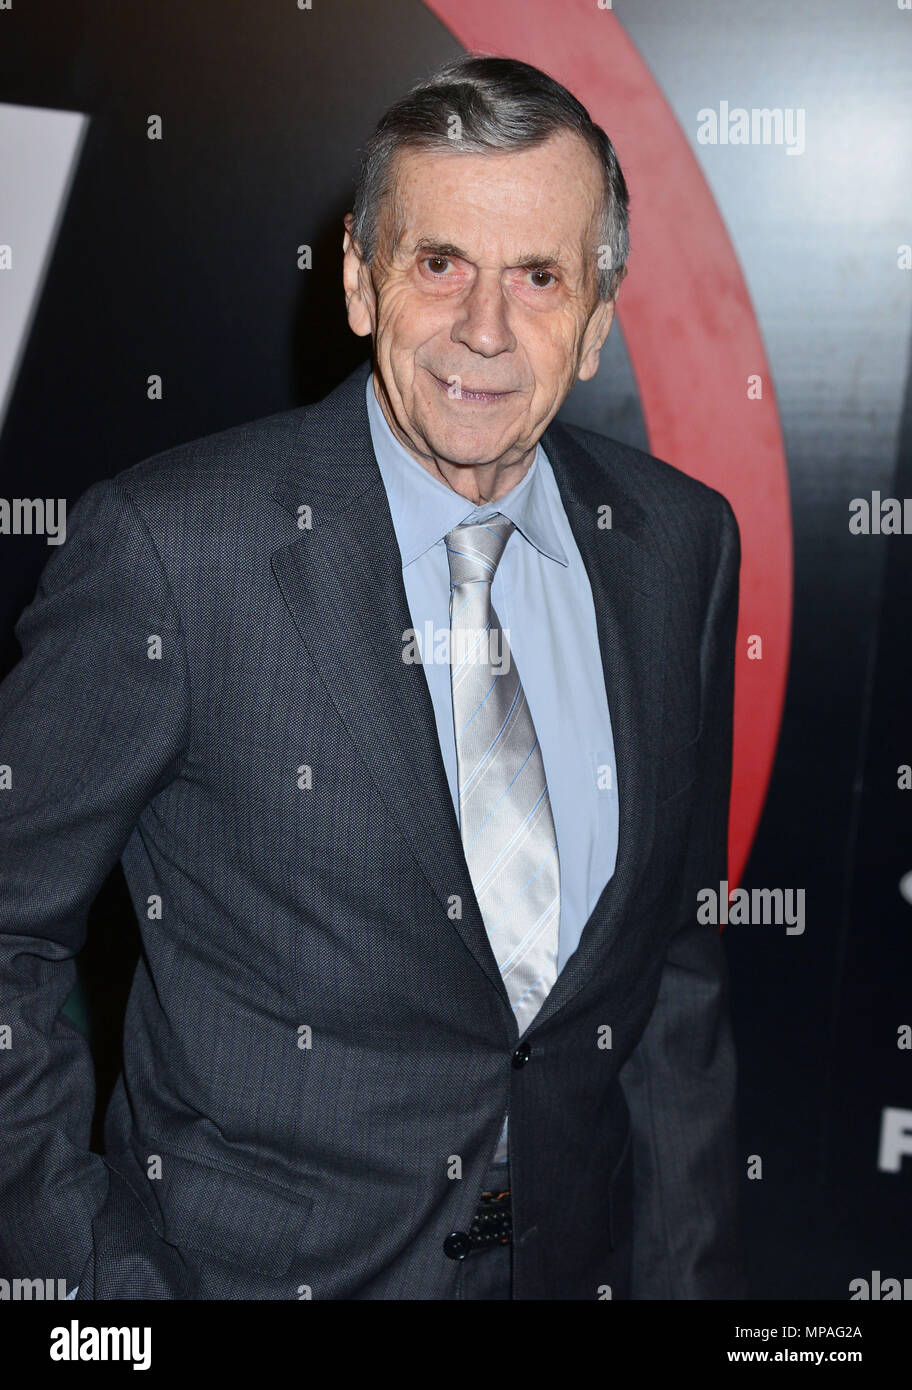 William B. Davis  at The X-Files Premiere at California Science Center in Los Angeles, CA  January 12, 2016.William B. Davis 064 ------------- Red Carpet Event, Vertical, USA, Film Industry, Celebrities,  Photography, Bestof, Arts Culture and Entertainment, Topix Celebrities fashion /  Vertical, Best of, Event in Hollywood Life - California,  Red Carpet and backstage, USA, Film Industry, Celebrities,  movie celebrities, TV celebrities, Music celebrities, Photography, Bestof, Arts Culture and Entertainment,  Topix, Three Quarters, vertical, one person,, from the year , 2016, inquiry tsuni@Gamma - Stock Image